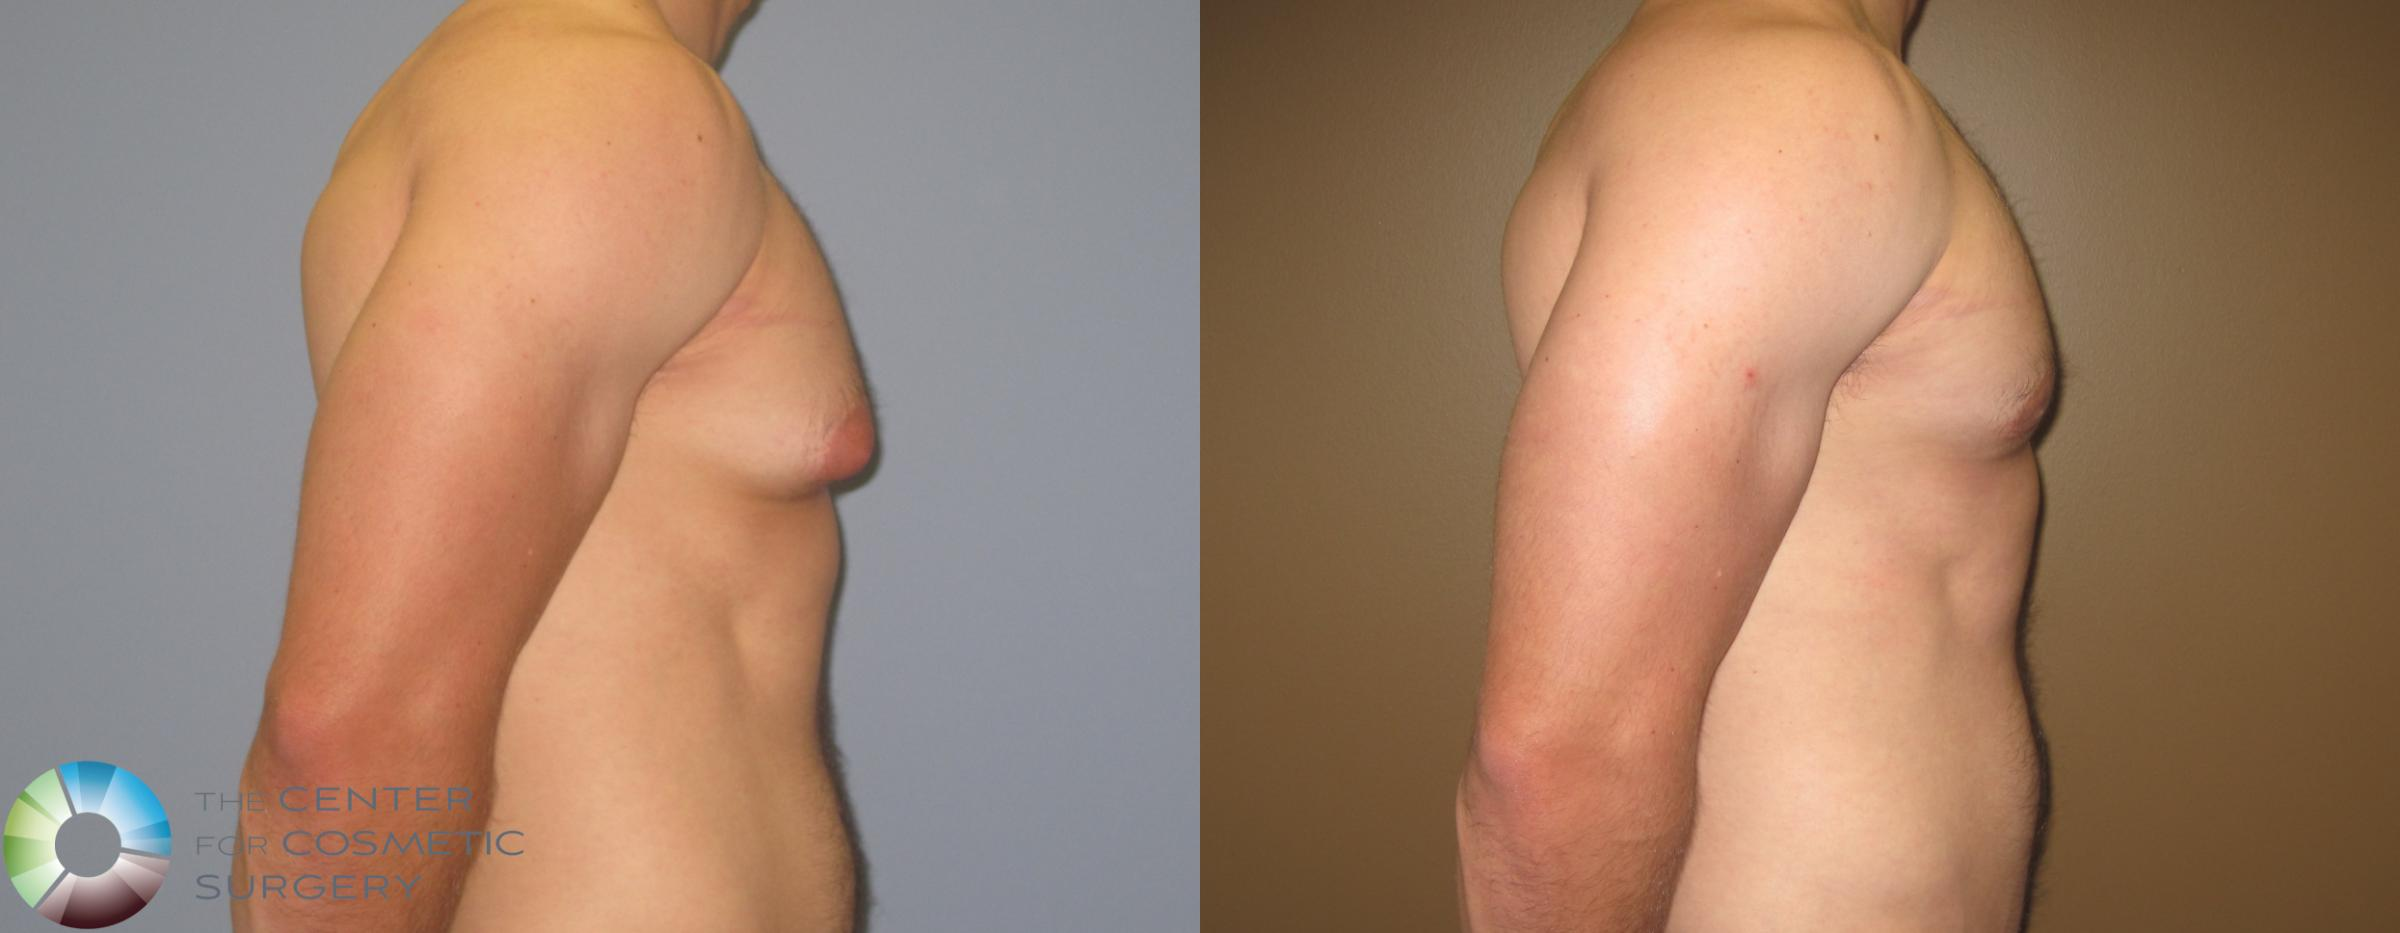 Male Breast Reduction (Gynecomastia) Case 451 Before & After View #1 | Golden, CO | The Center for Cosmetic Surgery